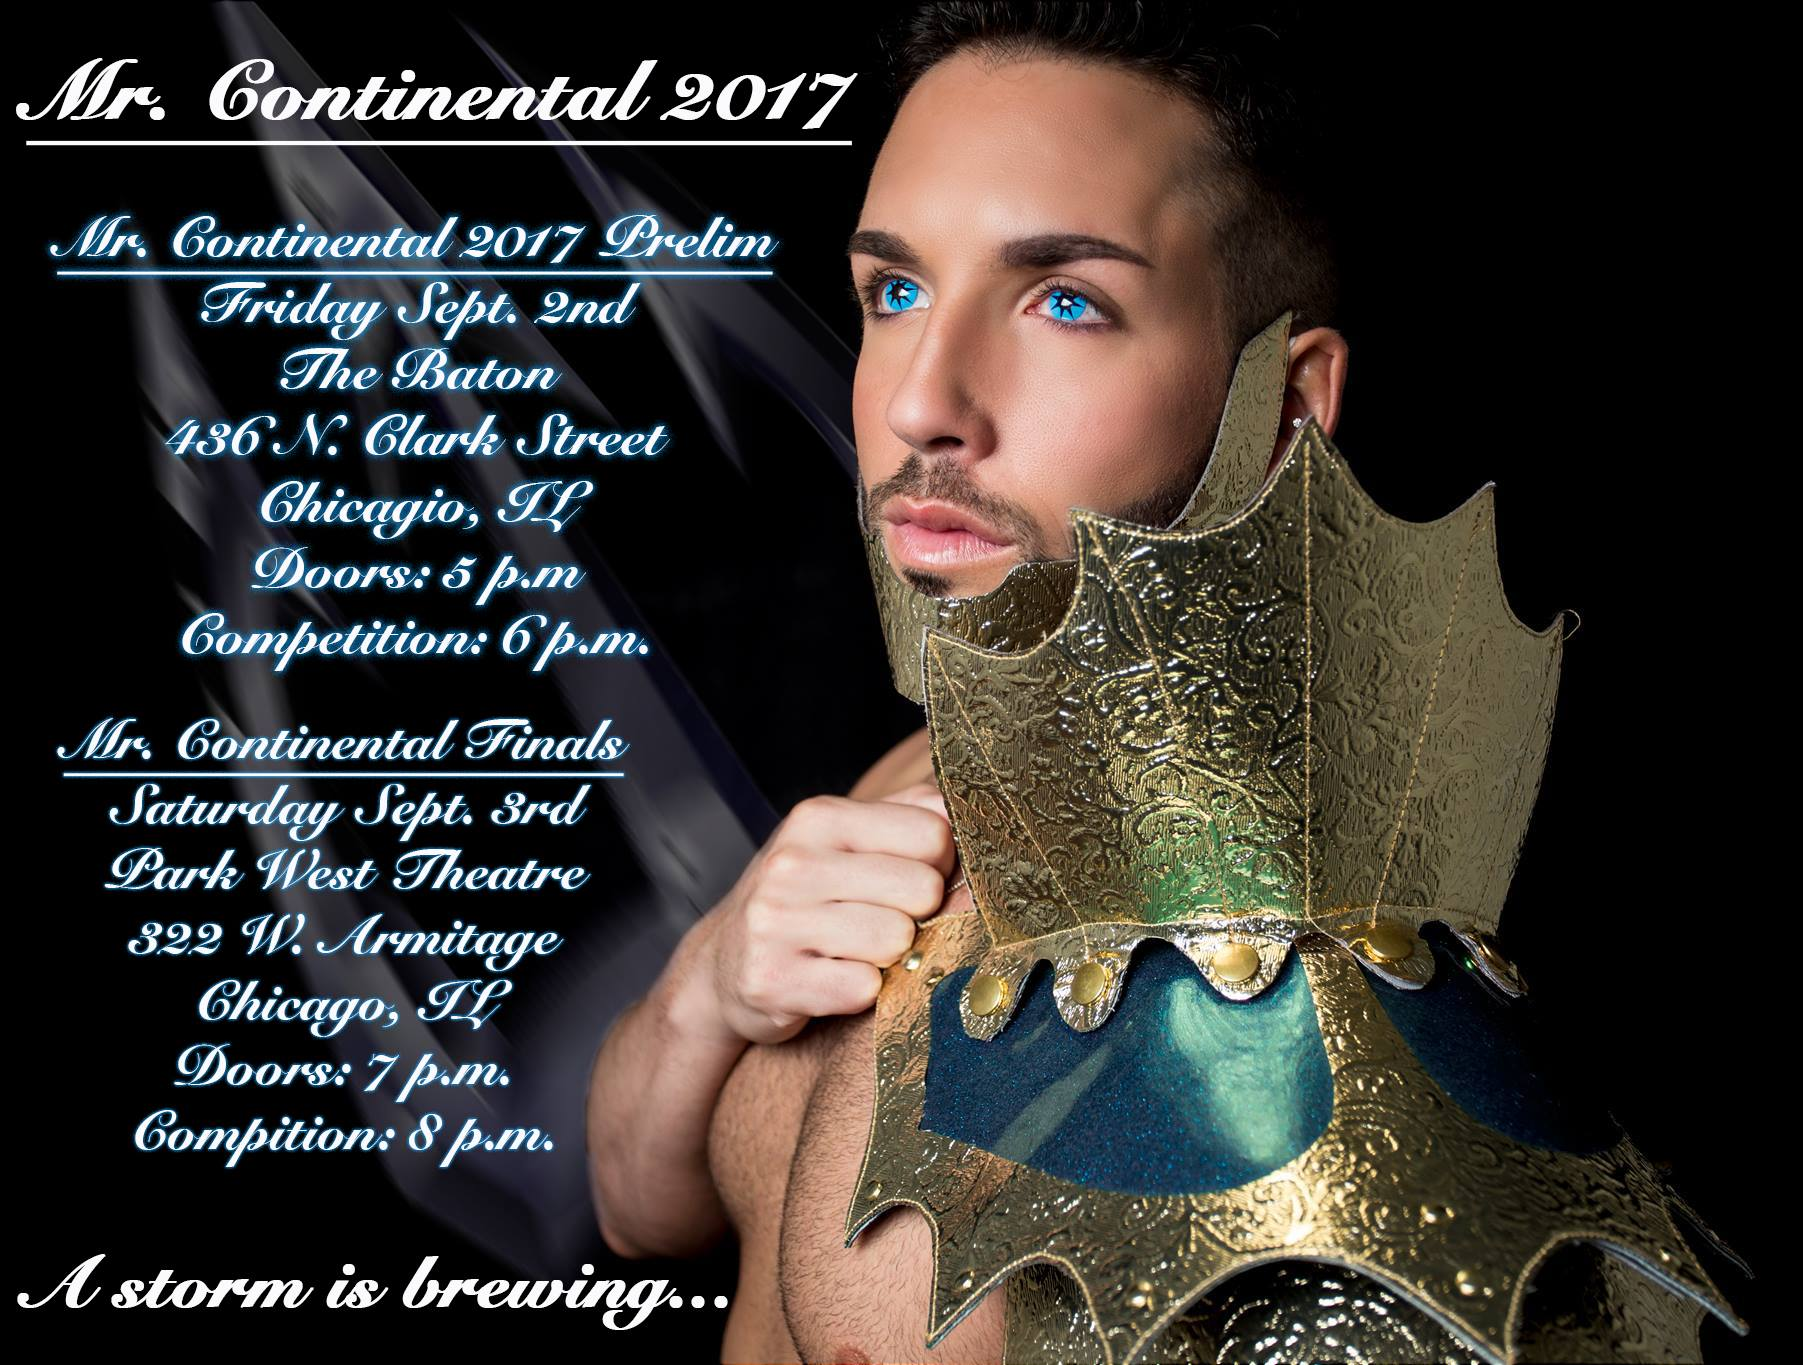 Show Ad | Mr. Continental | The Baton and Park West Theatre (Chicago, Illinois) | 9/2-9/3/2016